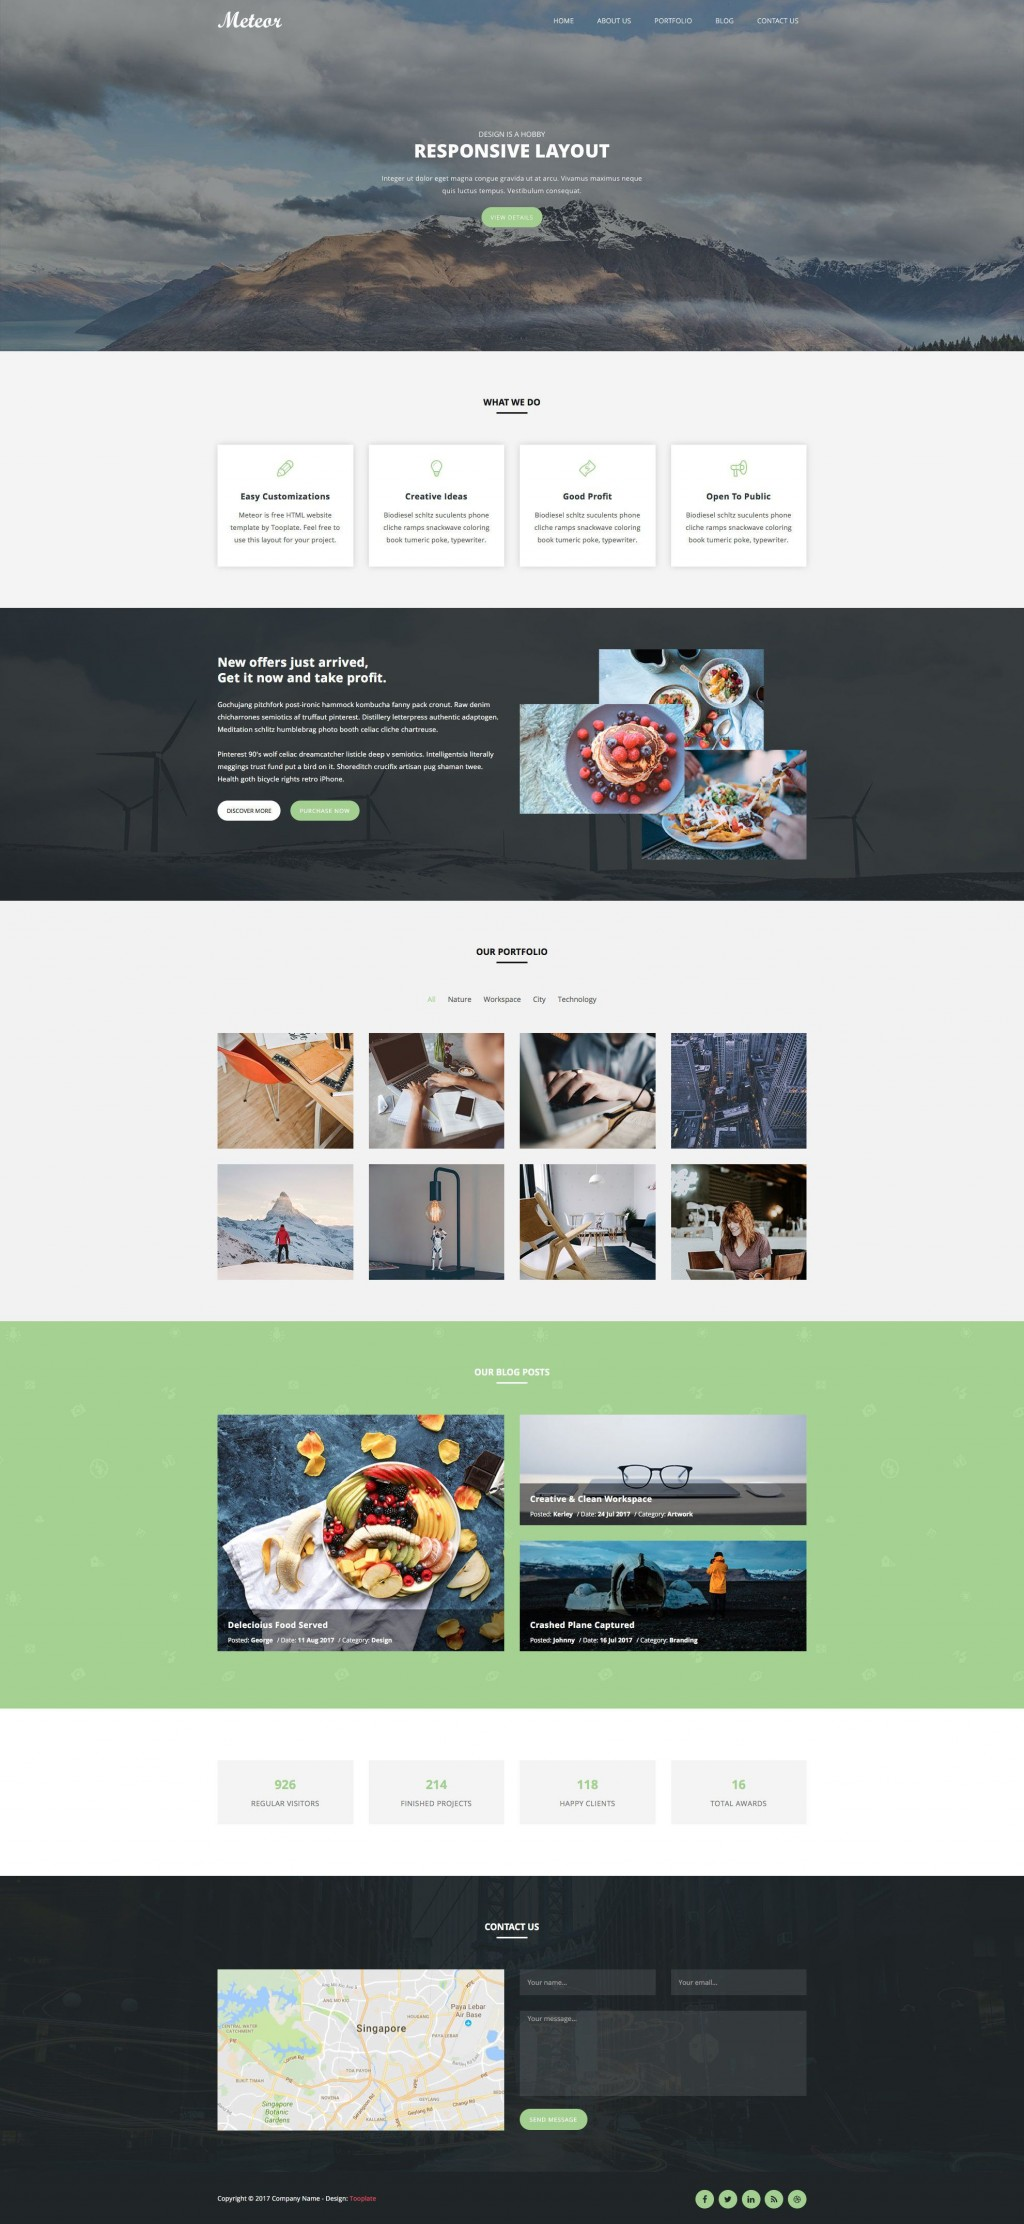 005 Awesome One Page Website Template Html5 Free Download Highest Clarity  ParallaxLarge